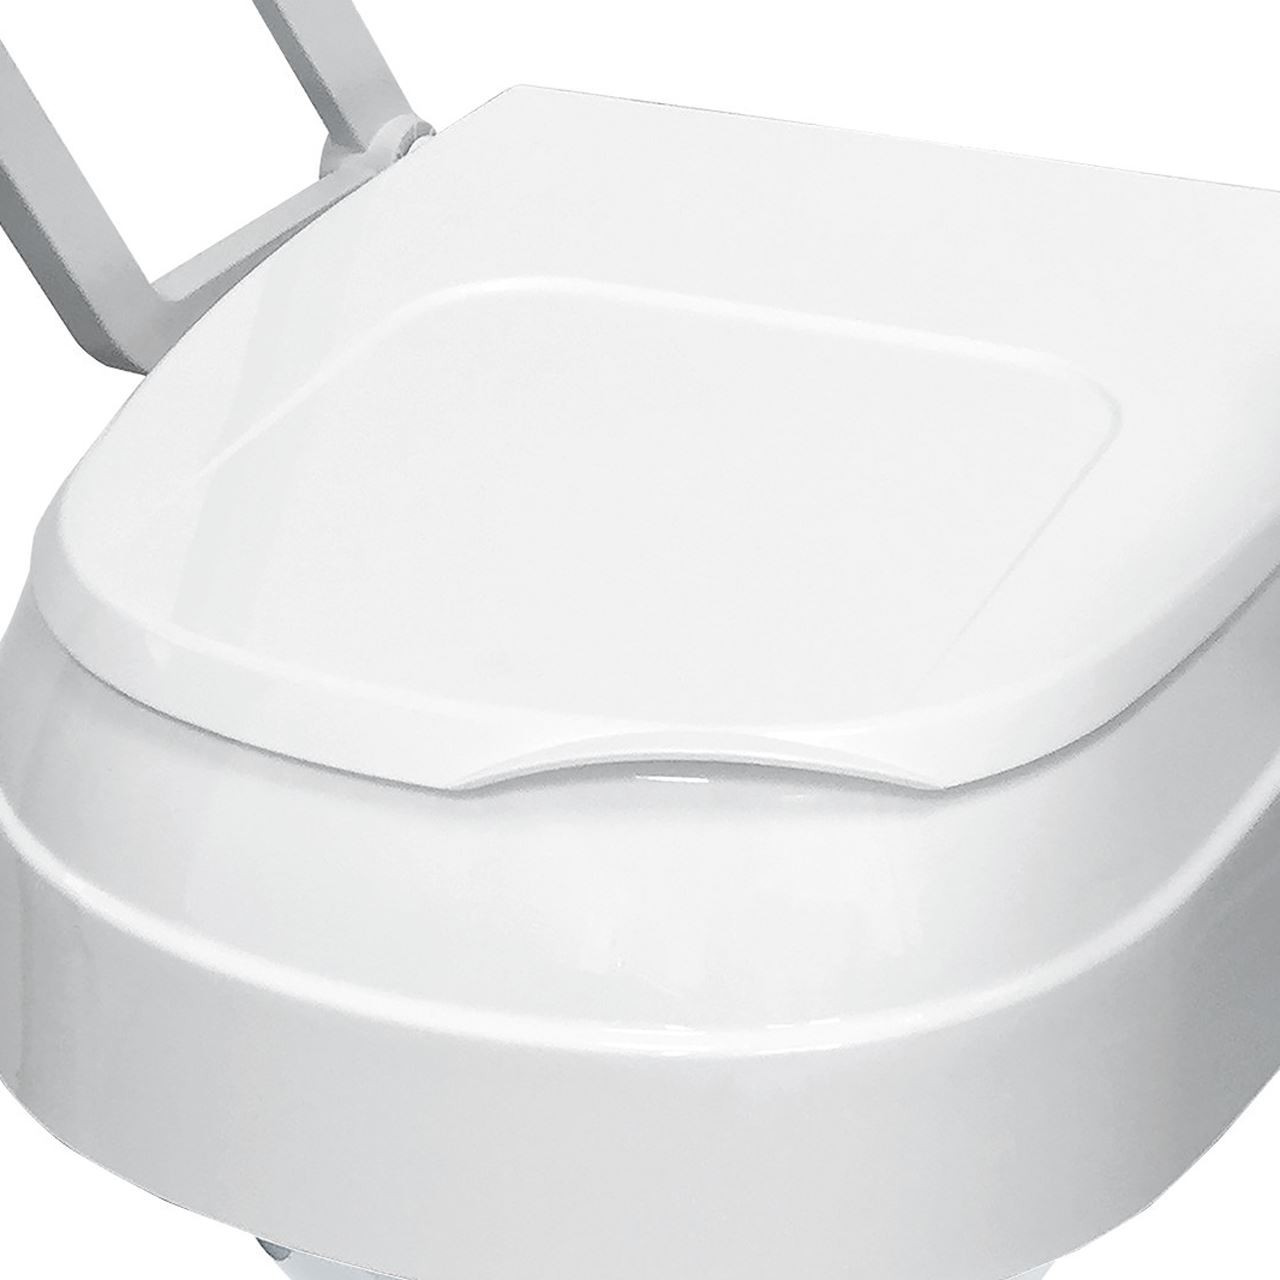 Wondrous Drive Toilet Seat With Lid And Arms Gmtry Best Dining Table And Chair Ideas Images Gmtryco